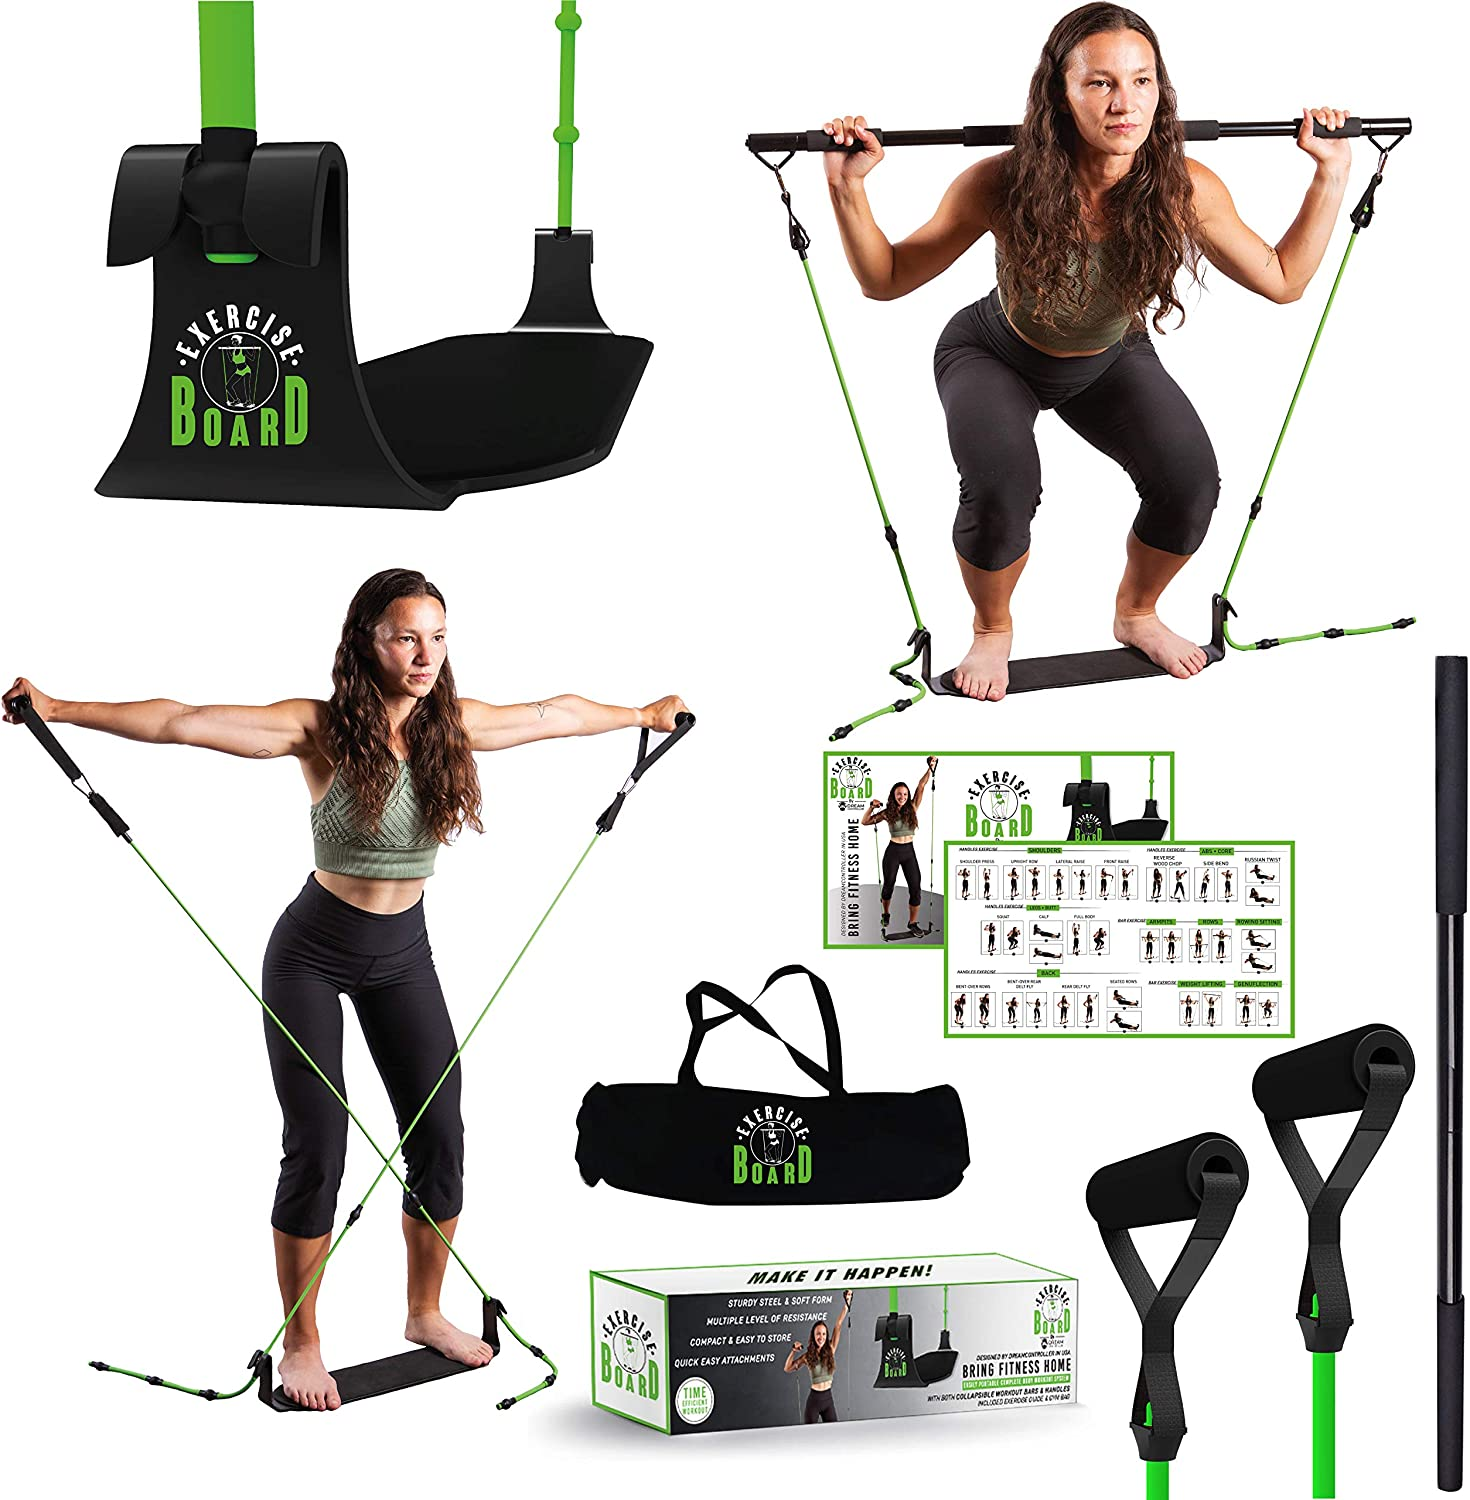 Fit core workout board exercise & fitness home gyms 3 in 1 At home workout equipment for women kit-Exercise Board with Bar & leg resistance bands for working out-Exercise bands with handles